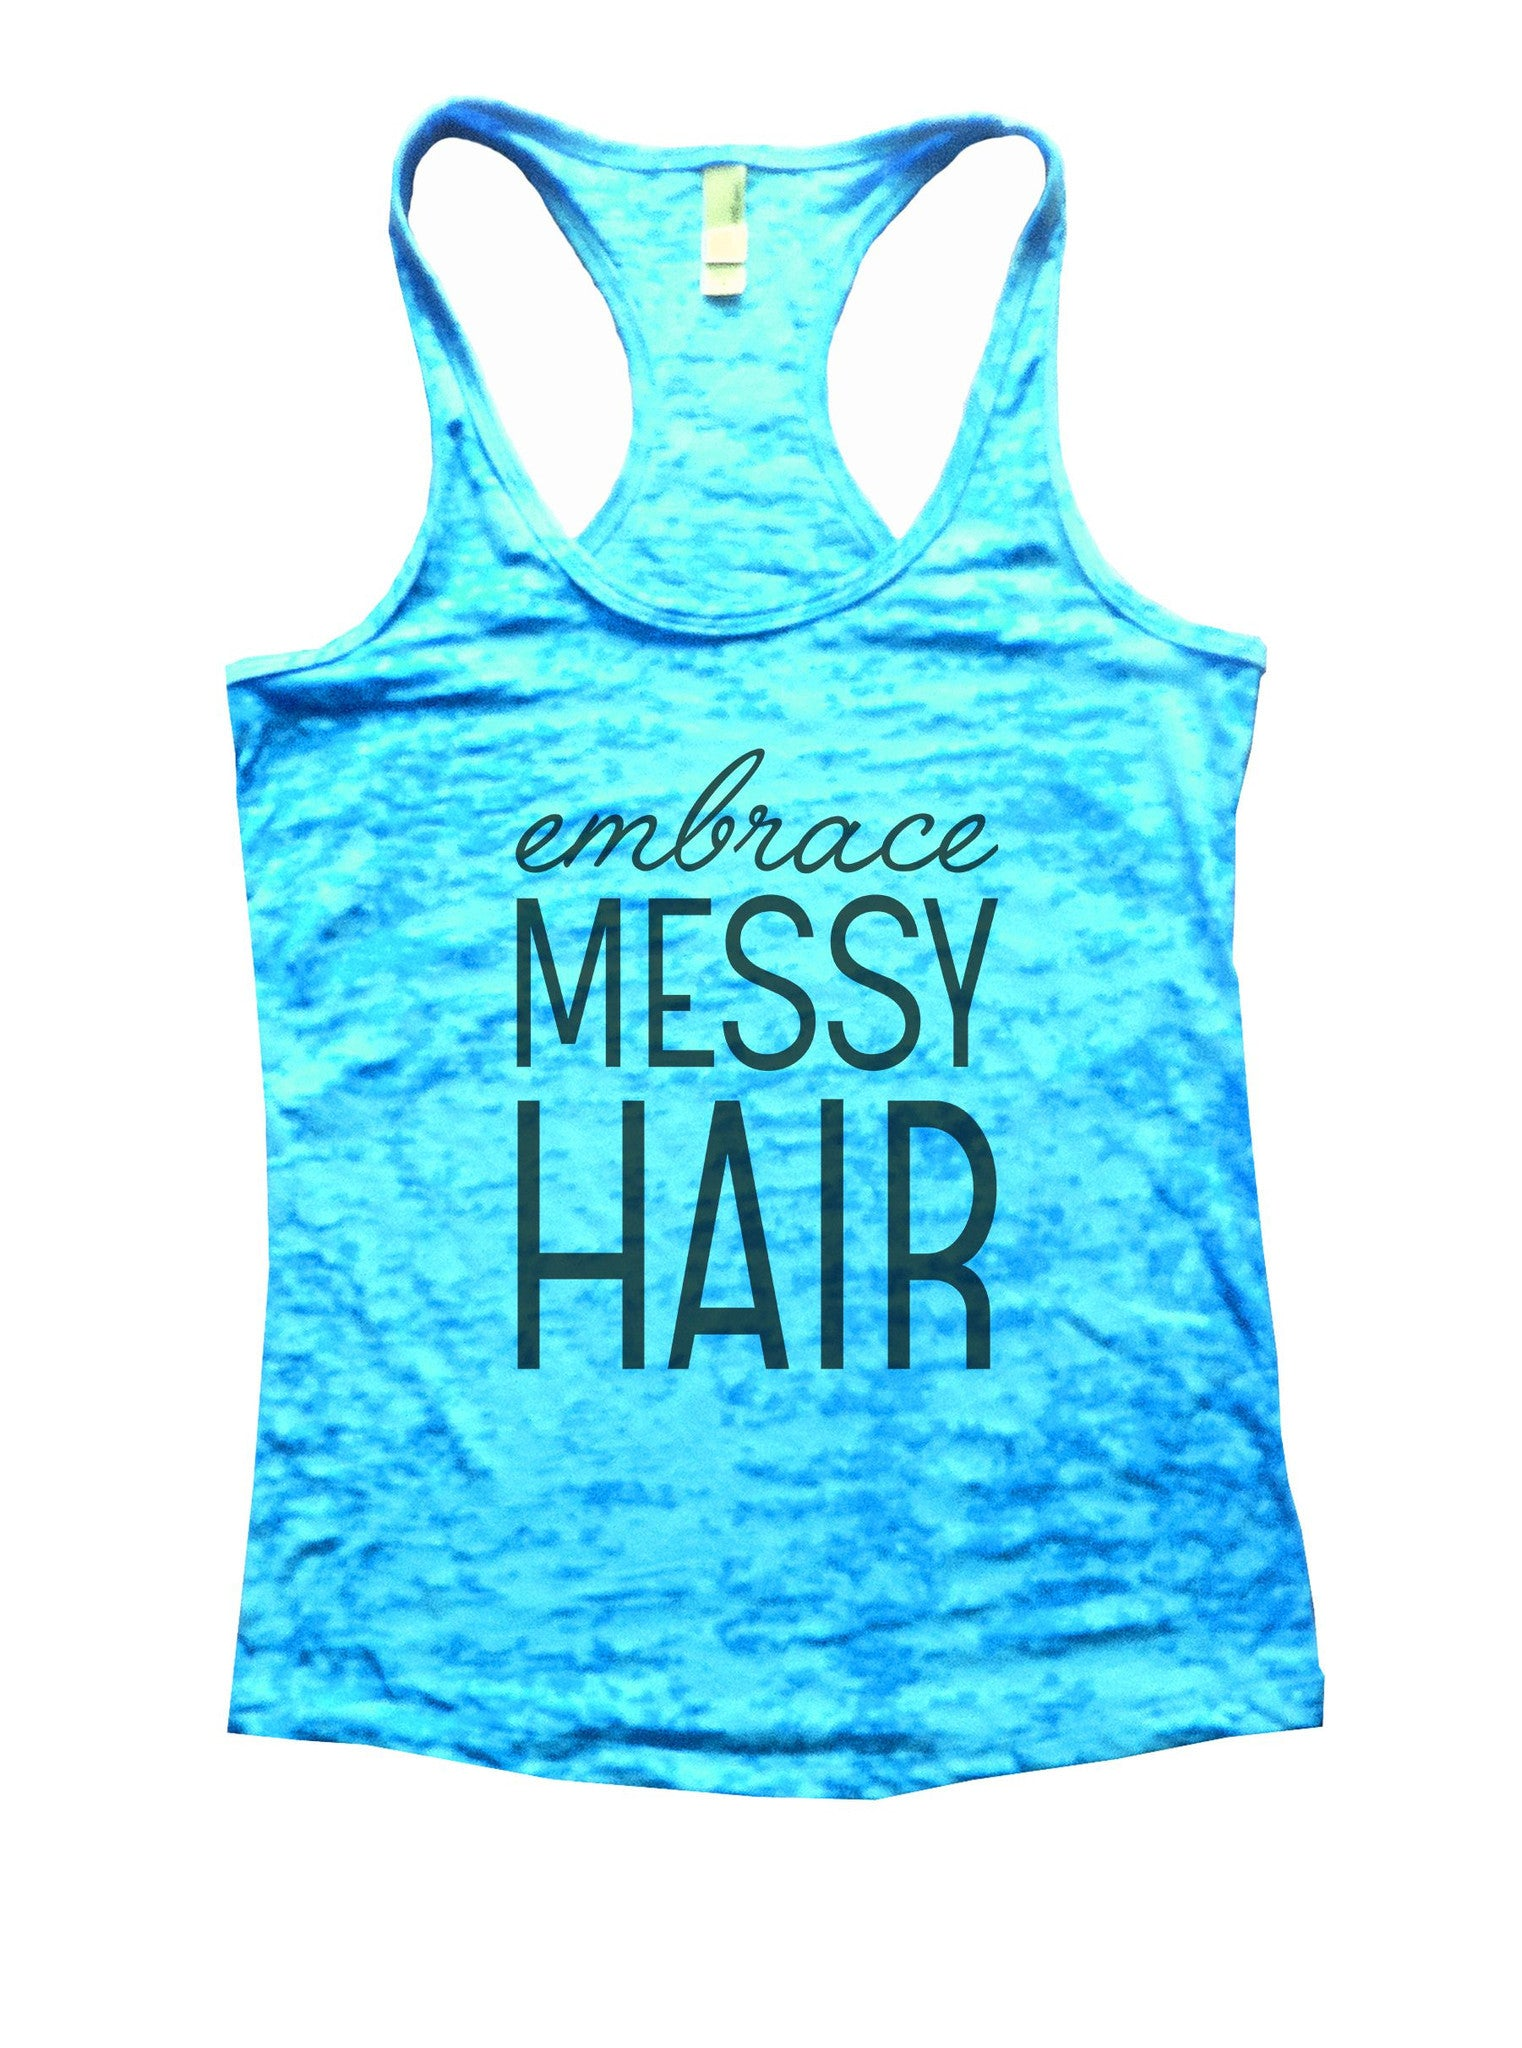 Embrace Messy Hair Burnout Tank Top By BurnoutTankTops.com - 940 - Funny Shirts Tank Tops Burnouts and Triblends  - 4